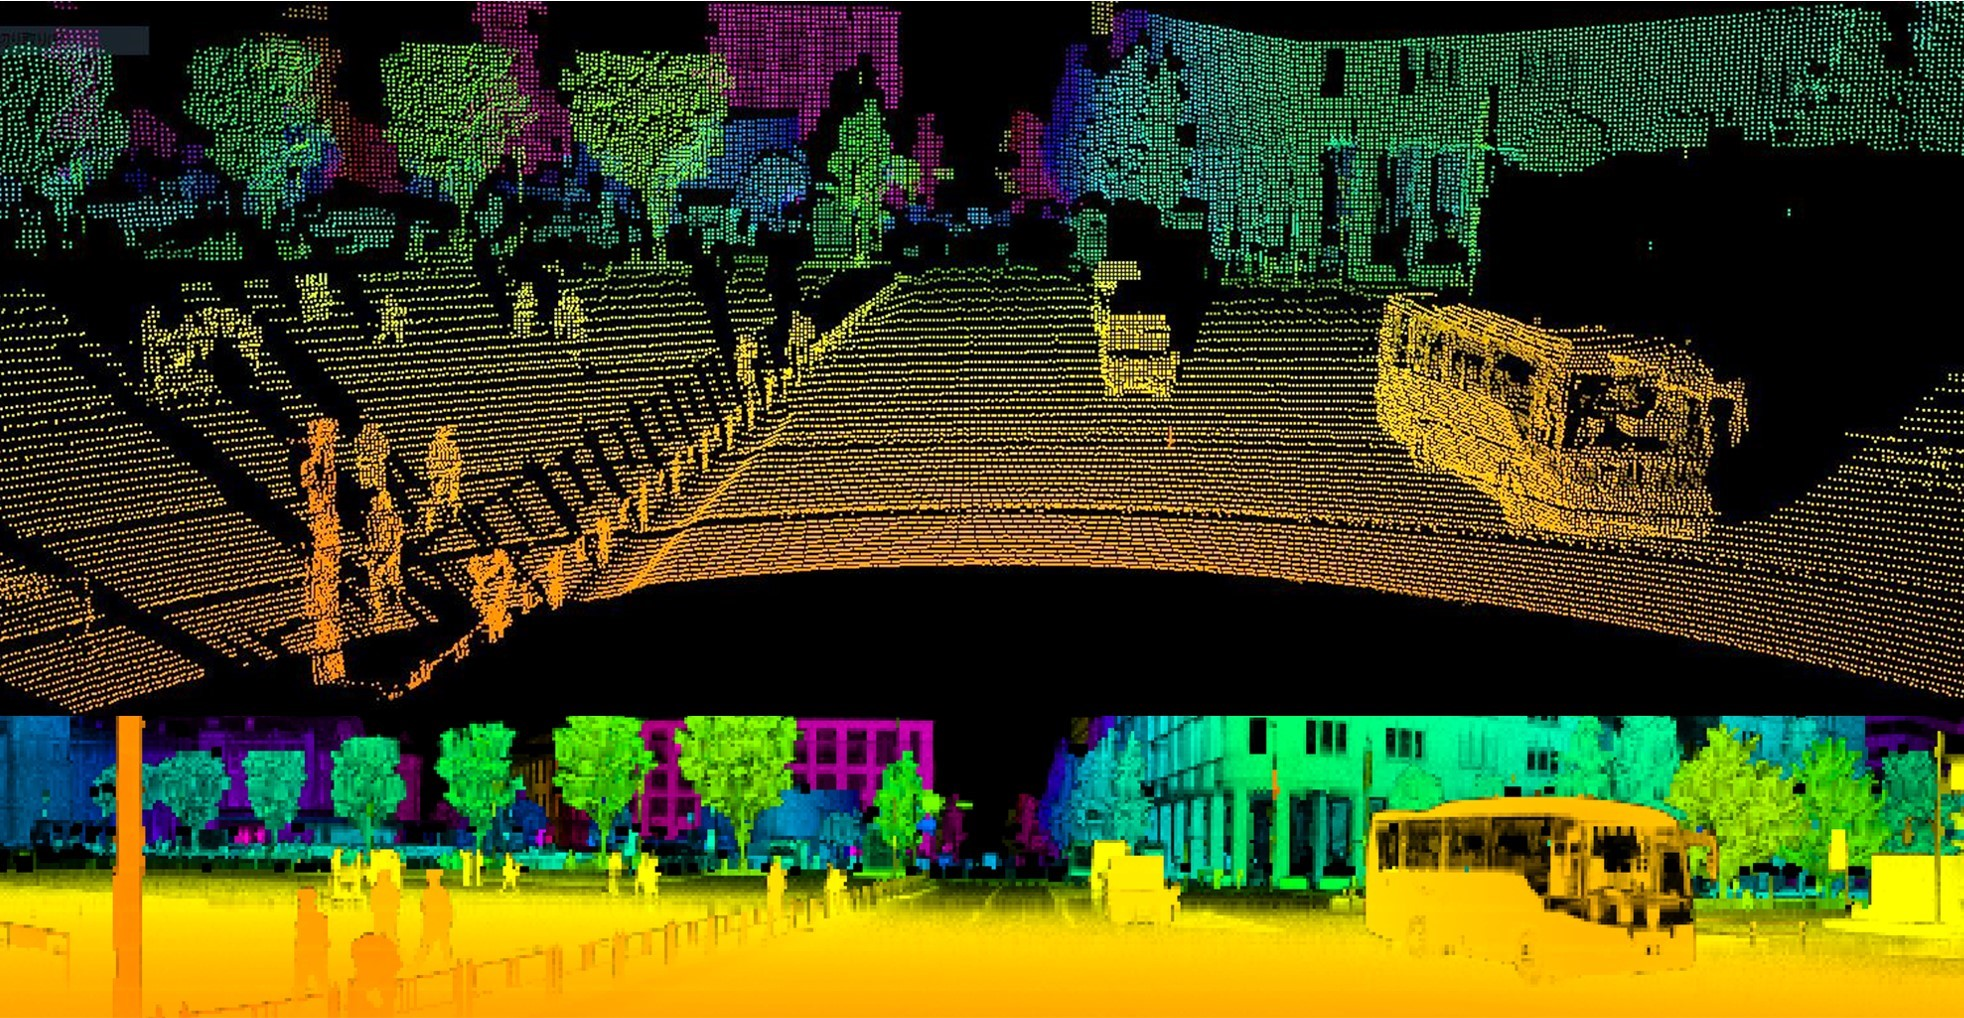 Imaging example (point cloud)